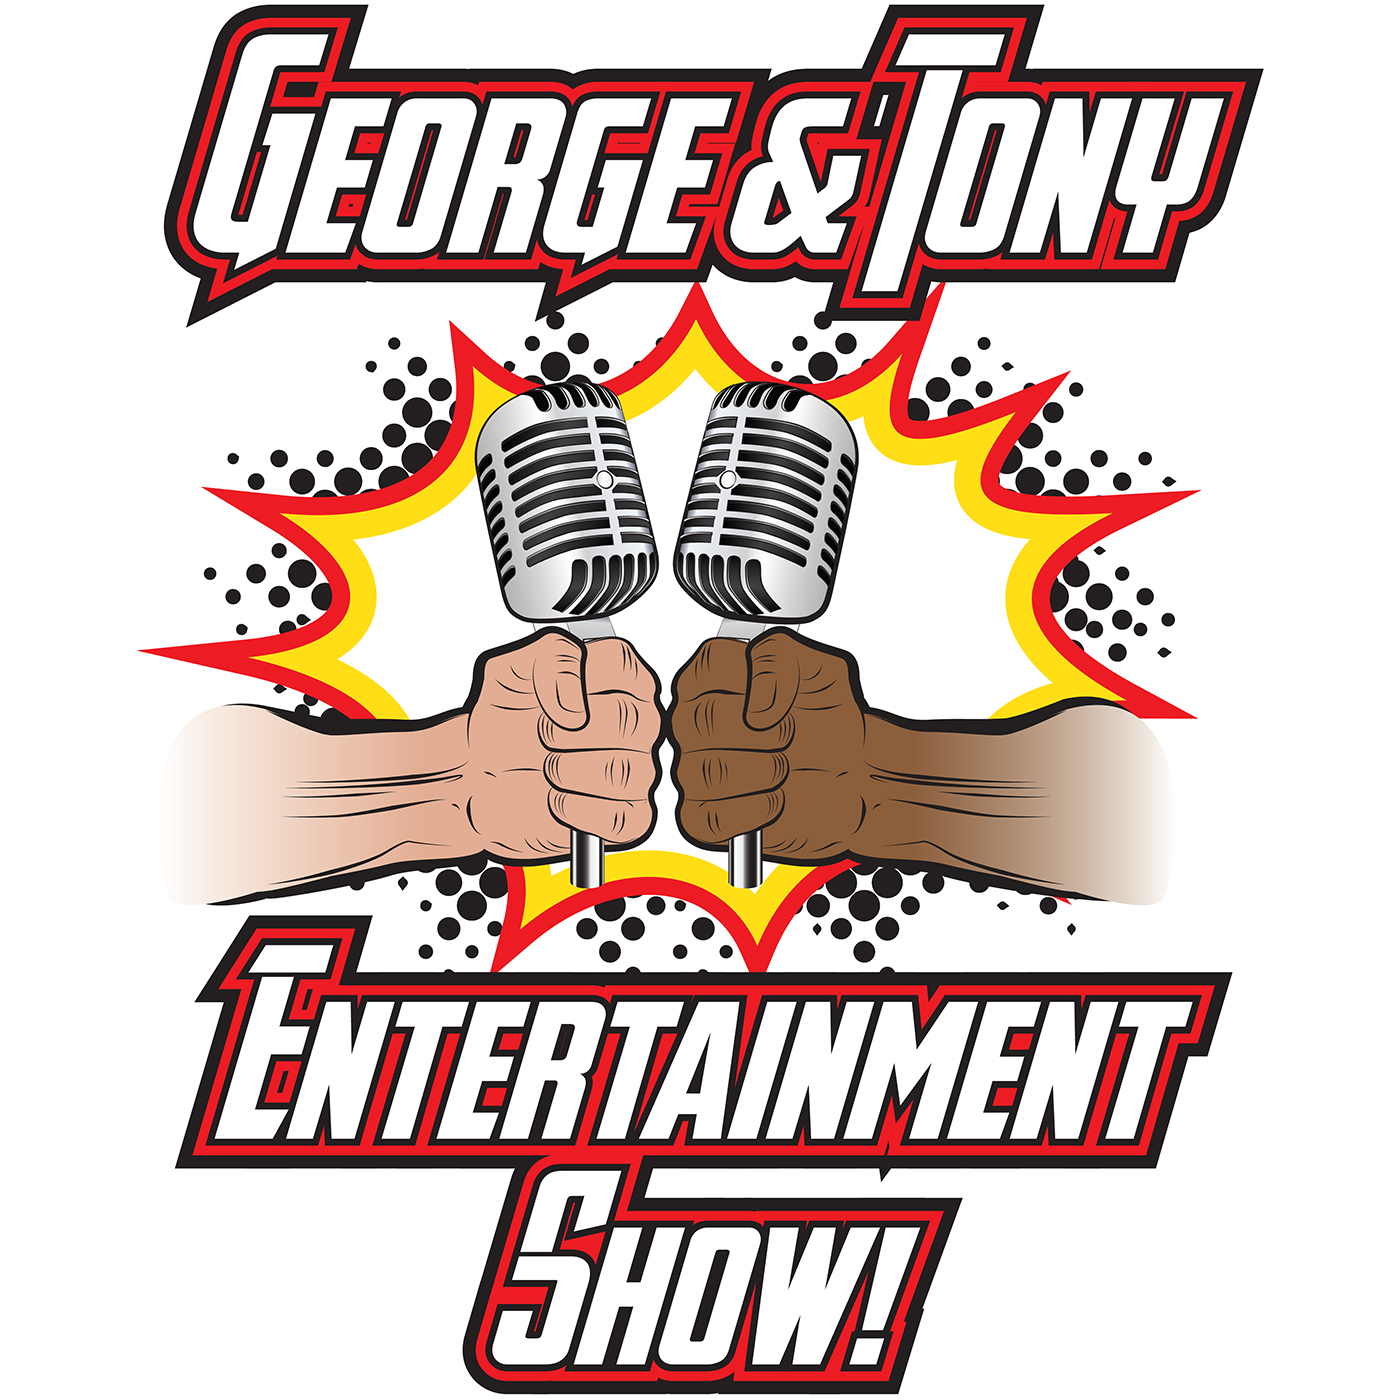 George and Tony Entertainment Show #73